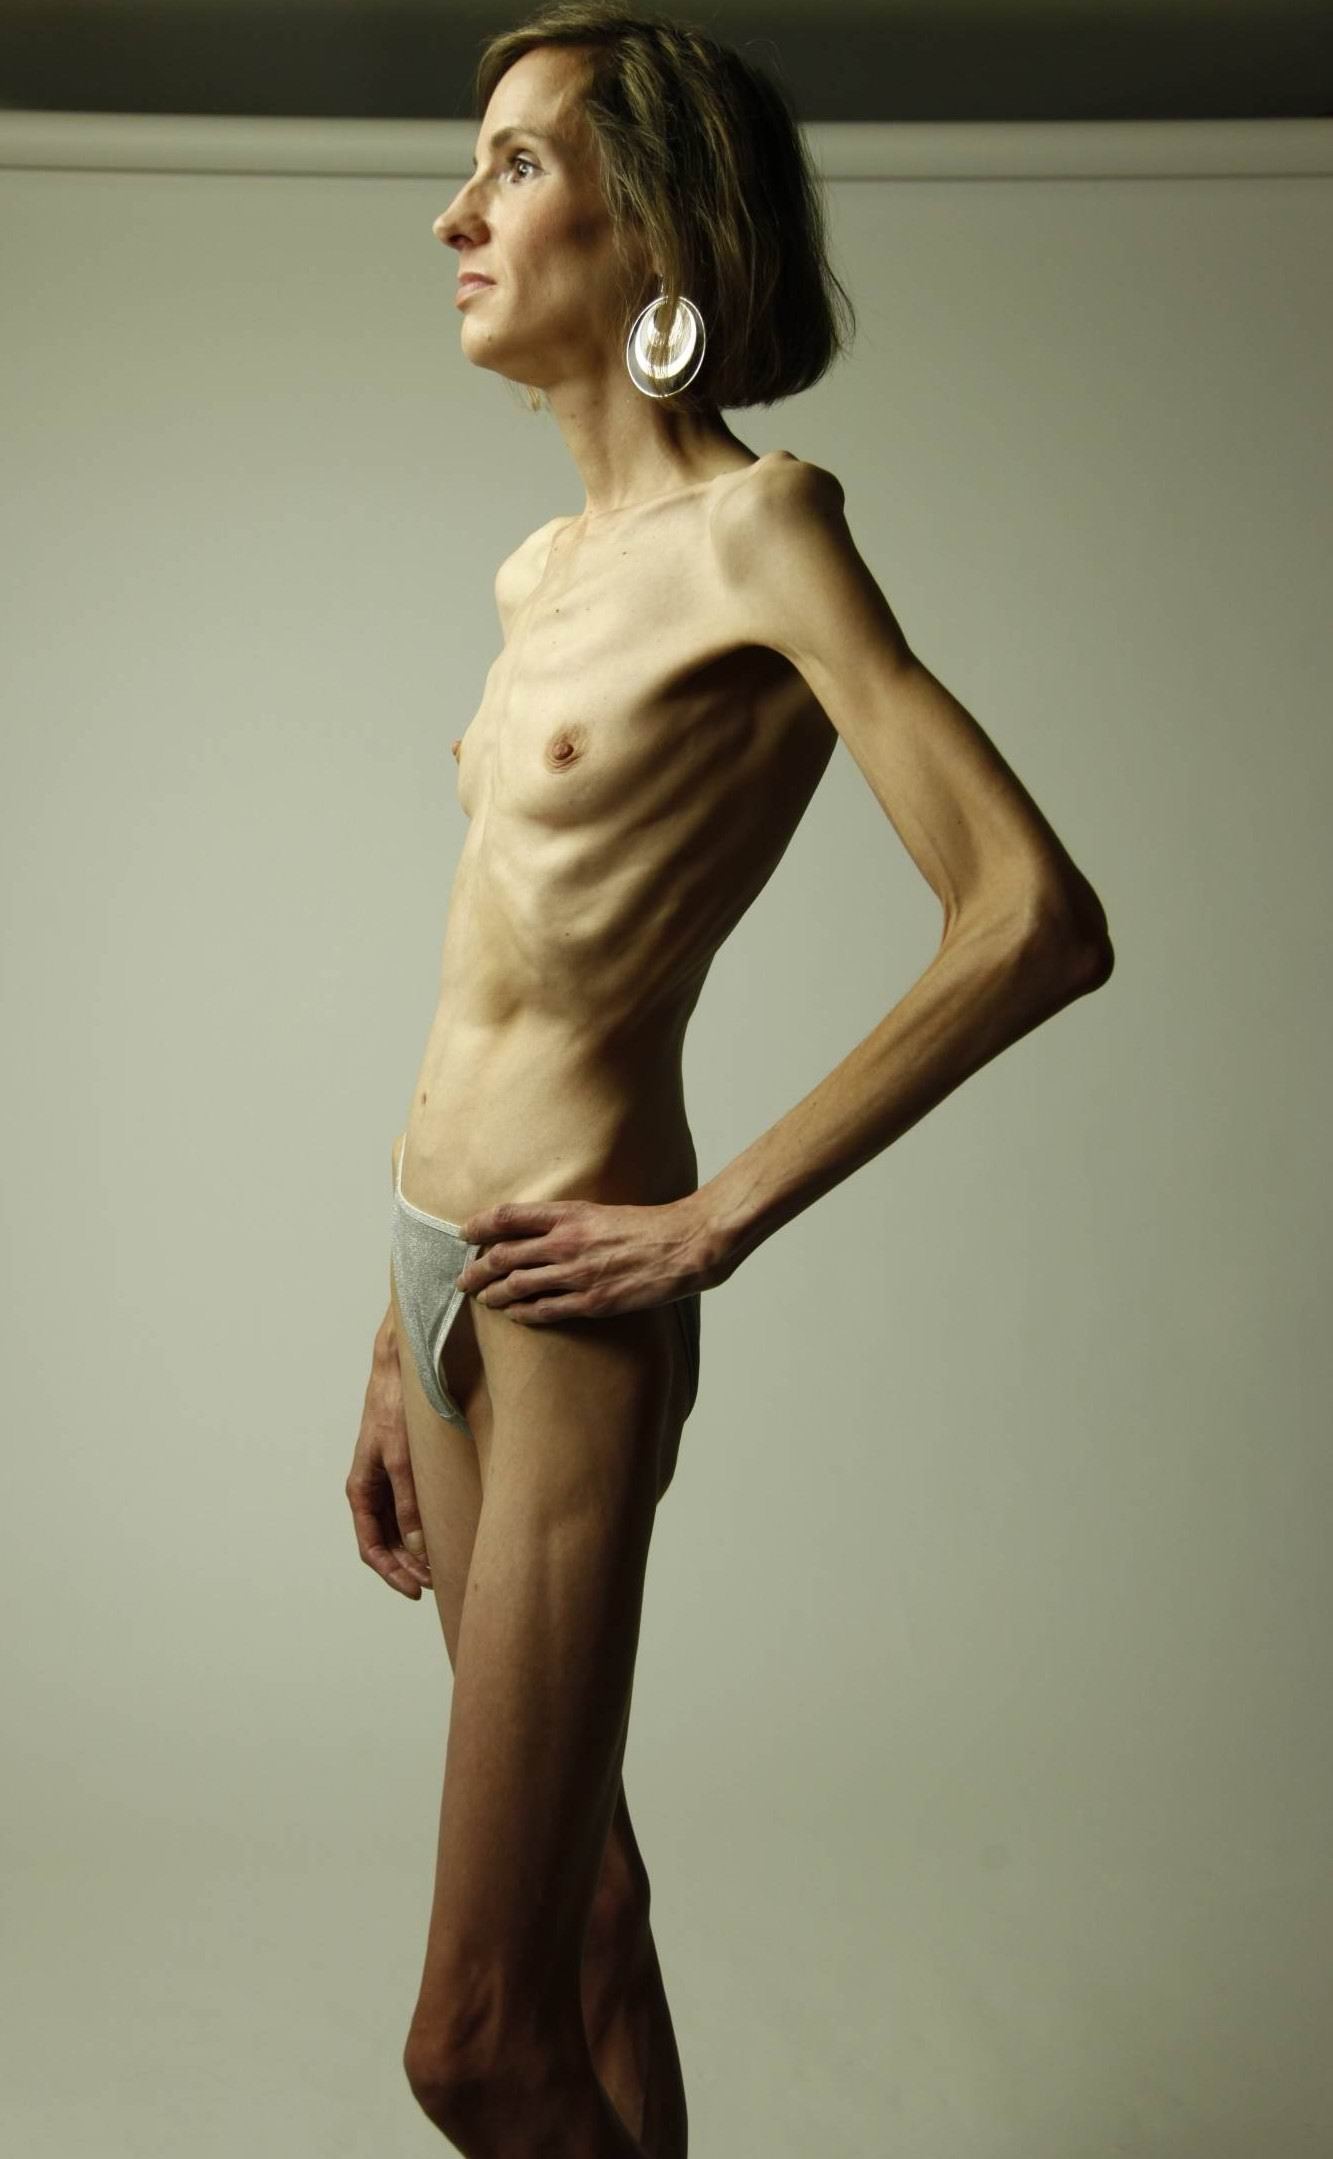 anorexia nude girls thumbs